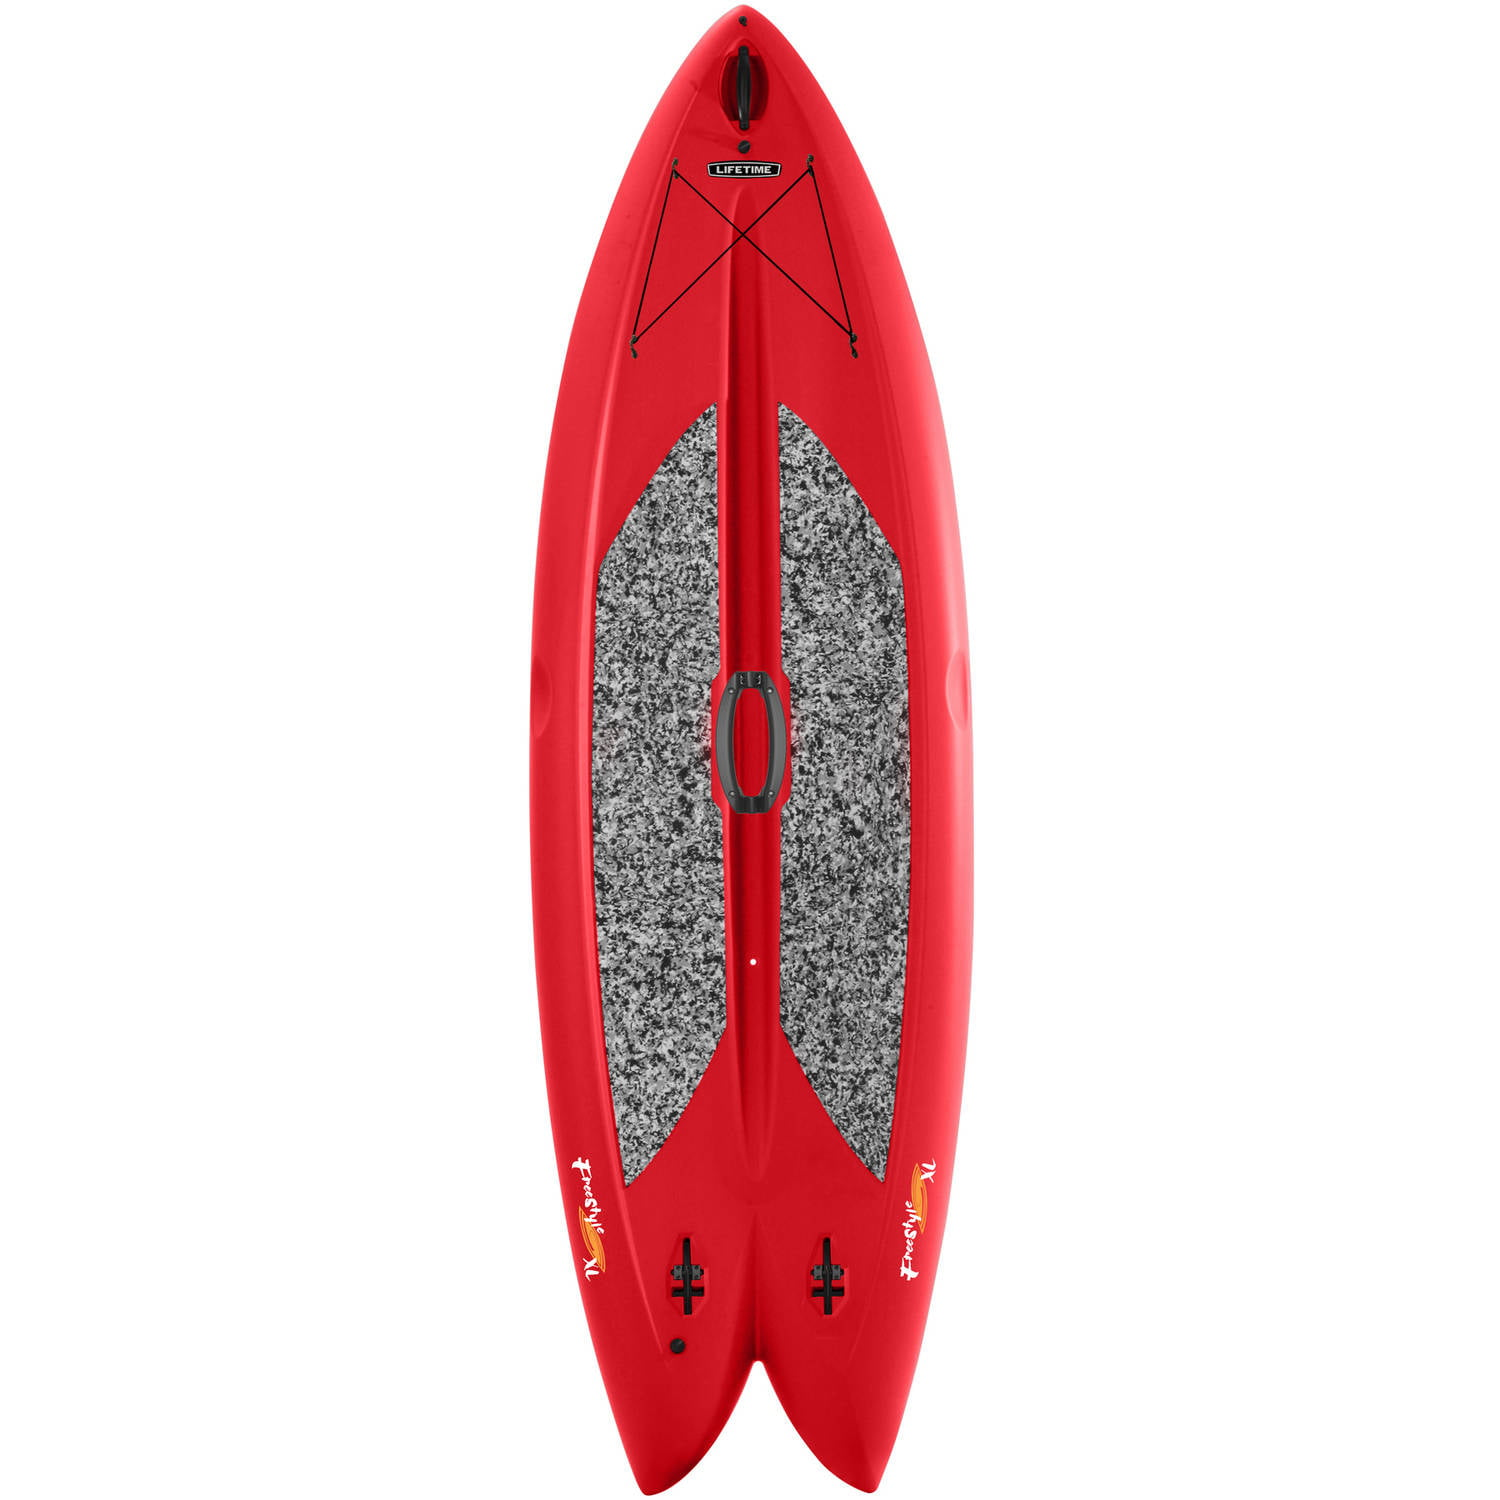 Lifetime Freestyle XL 98 Stand-Up Paddleboard (Paddle Included), 90239 by Lifetime